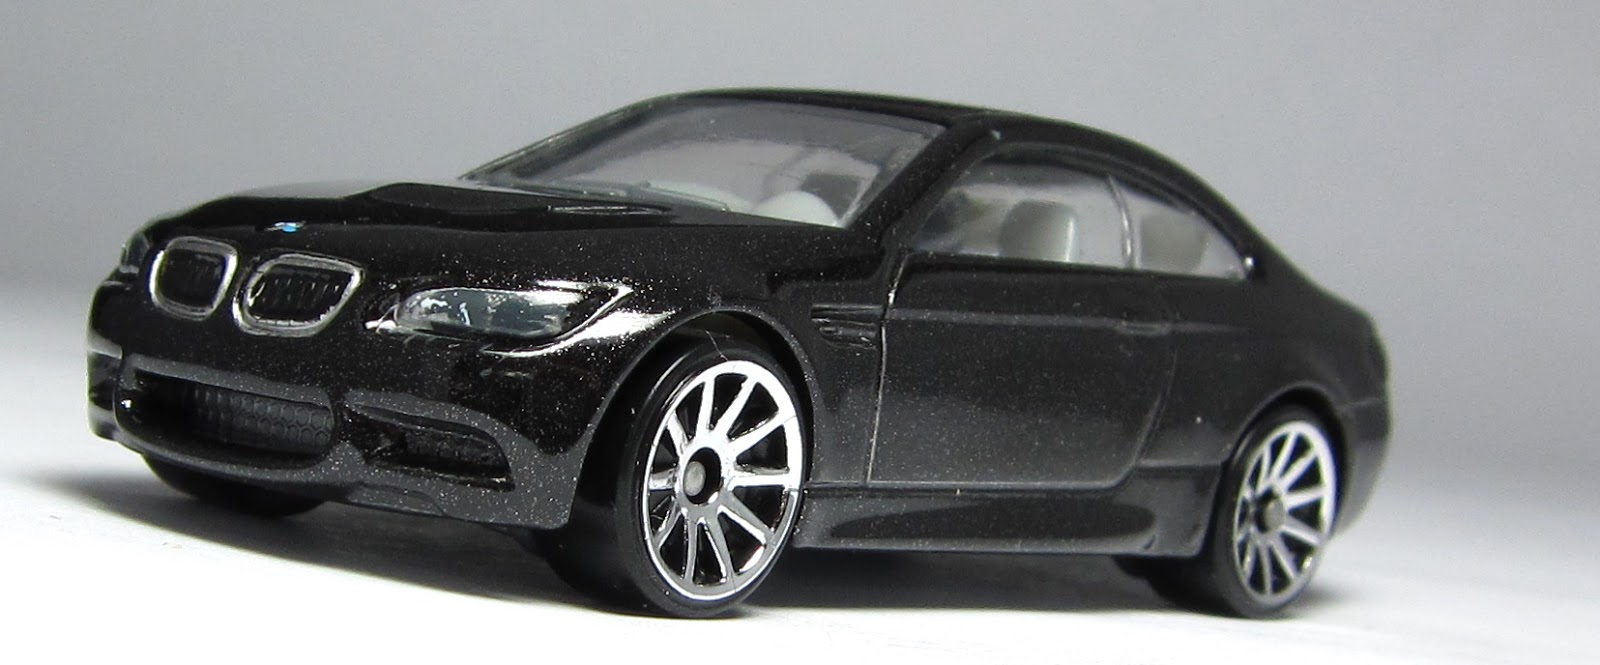 first look hot wheels bmw m3 in black thelamleygroup. Black Bedroom Furniture Sets. Home Design Ideas